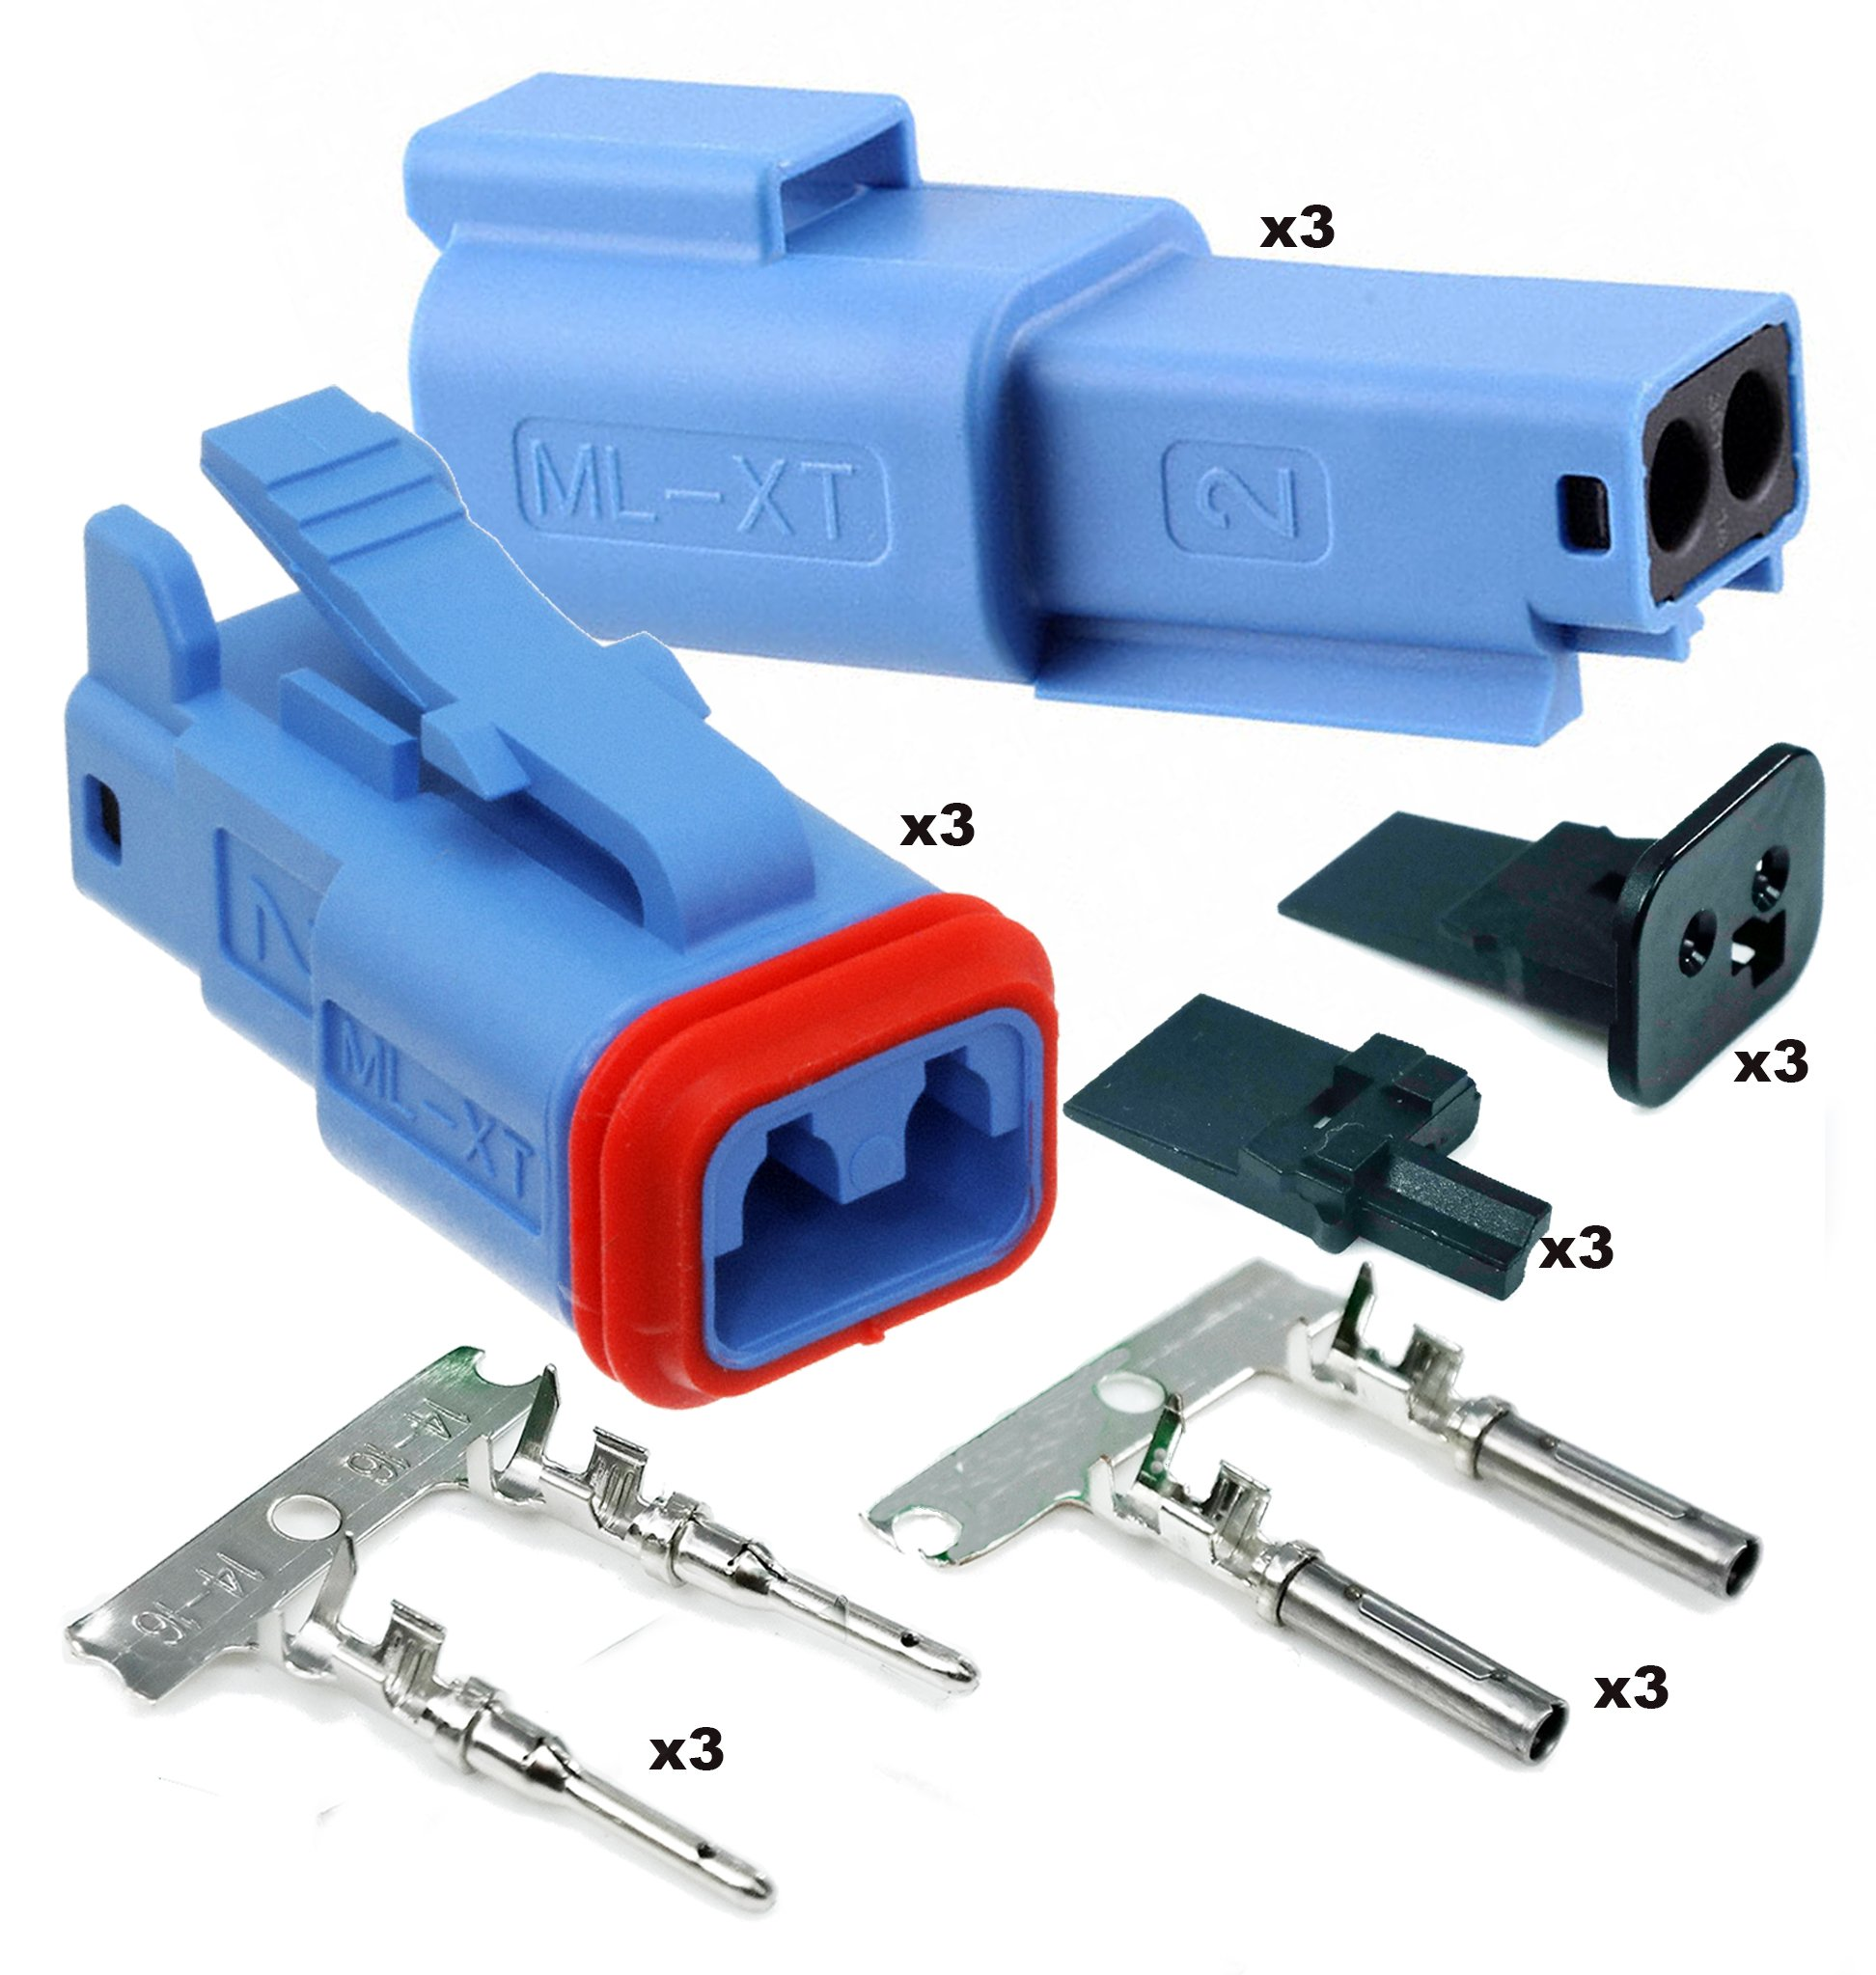 Molex Sealed- 2 Pin Blue Connector w/14-18 AWG - ML-XT (Key Lock) (3 Completed Set)